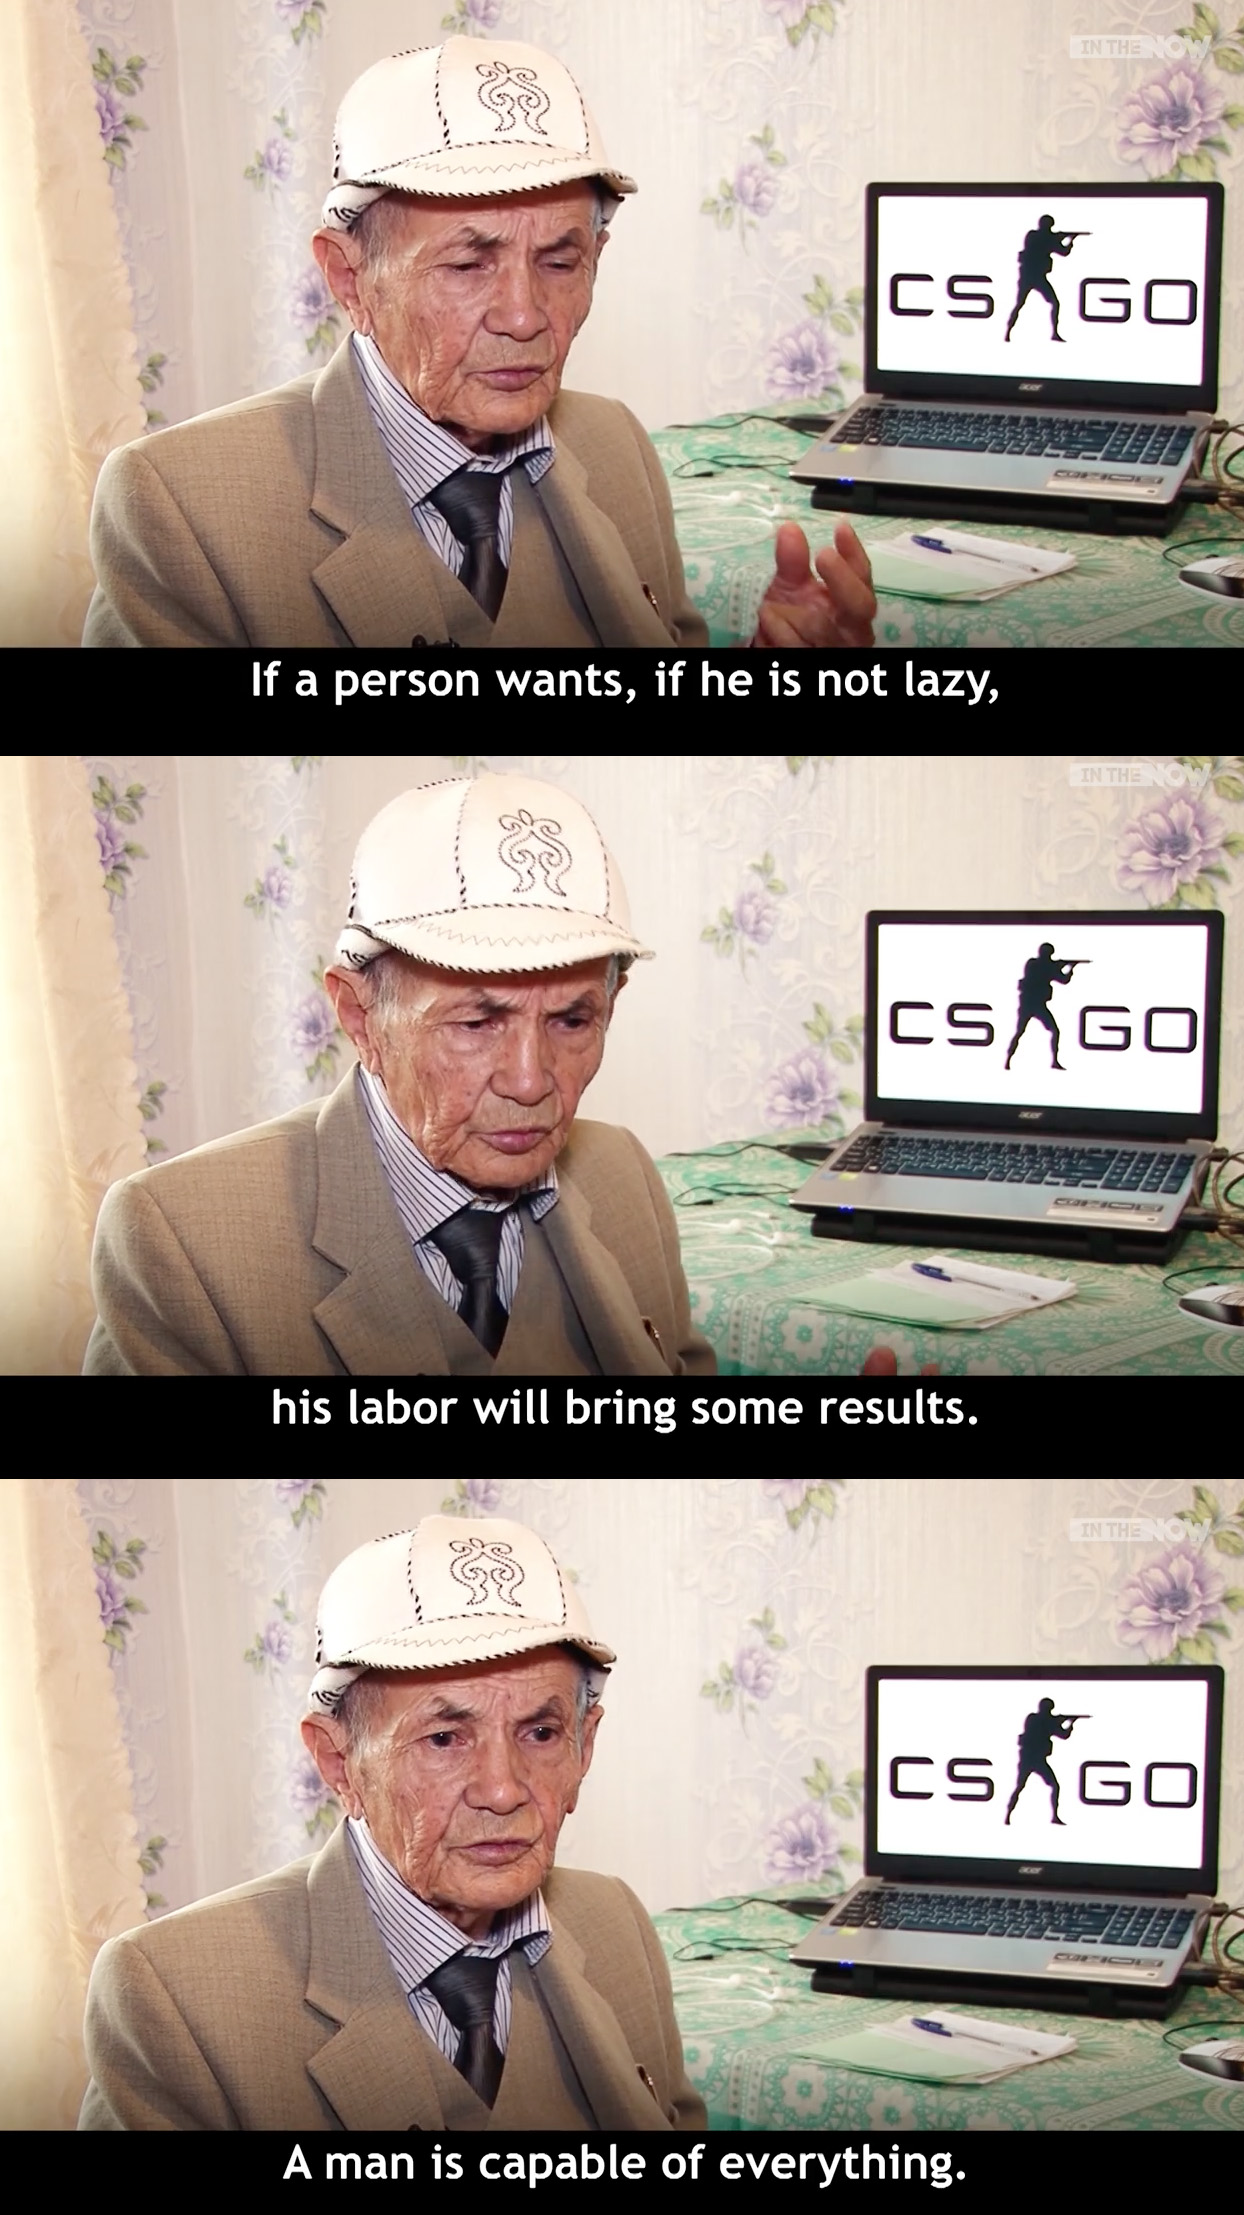 71 Year old CSGO Player [Image]